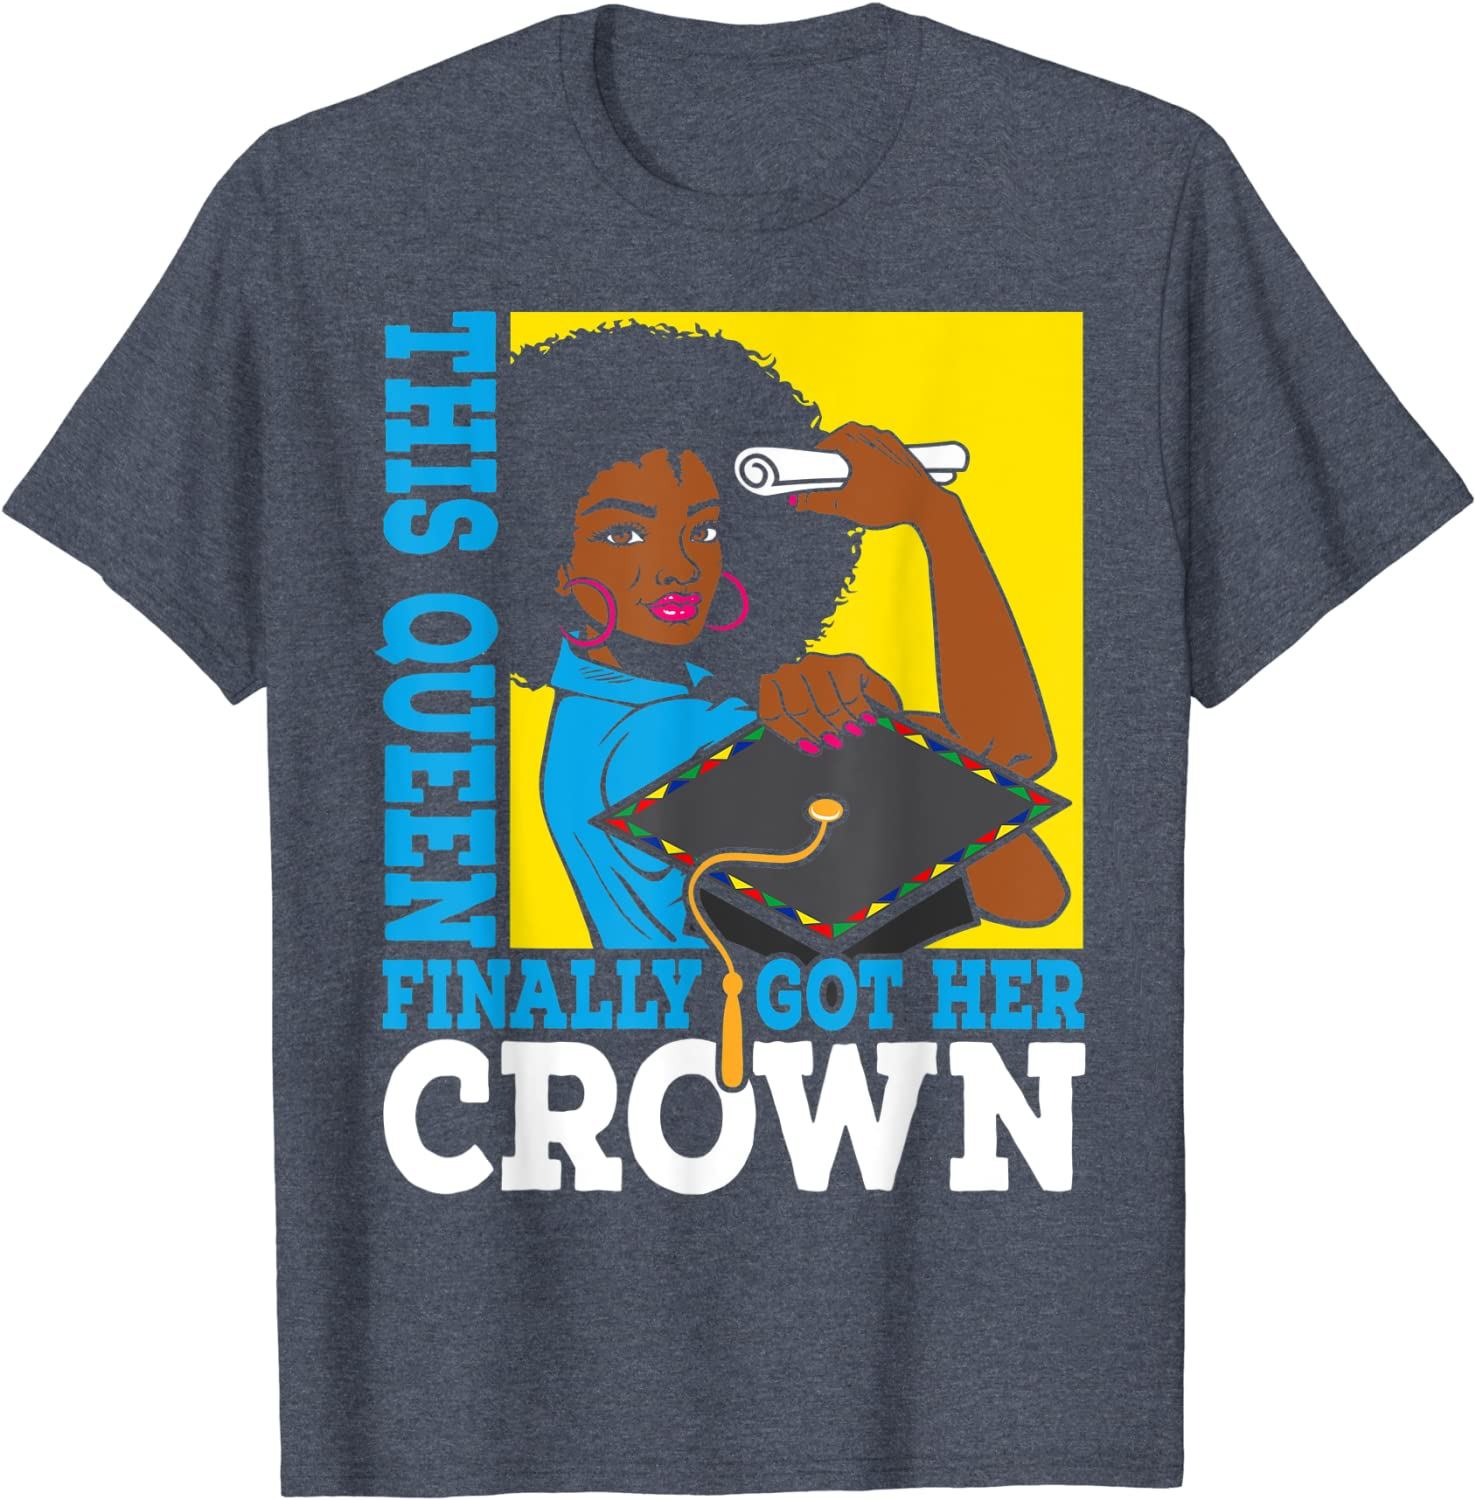 Trendy Top Selling Items Educated Queen T-shirt Graduation Statement Tee Apparel,Original Designs Tshirts Earrings Available